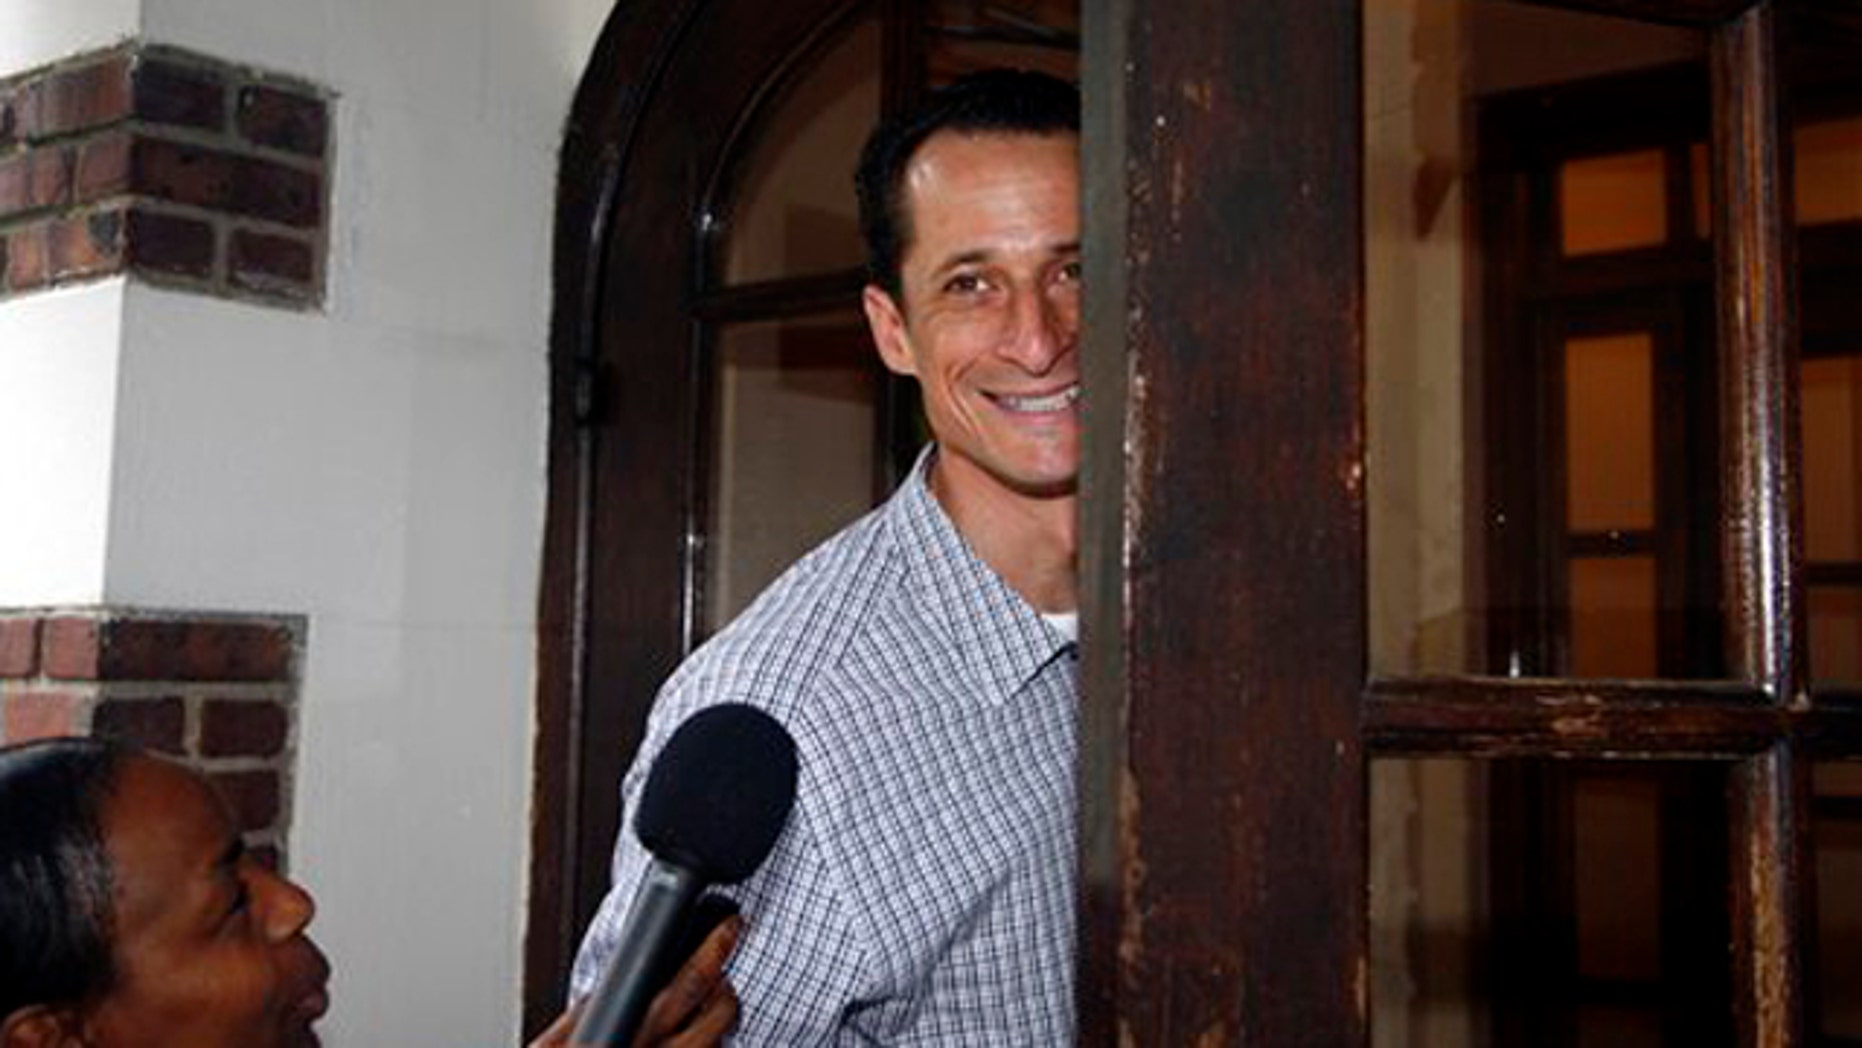 Rep. Anthony Weiner enters his home in New York June 11.